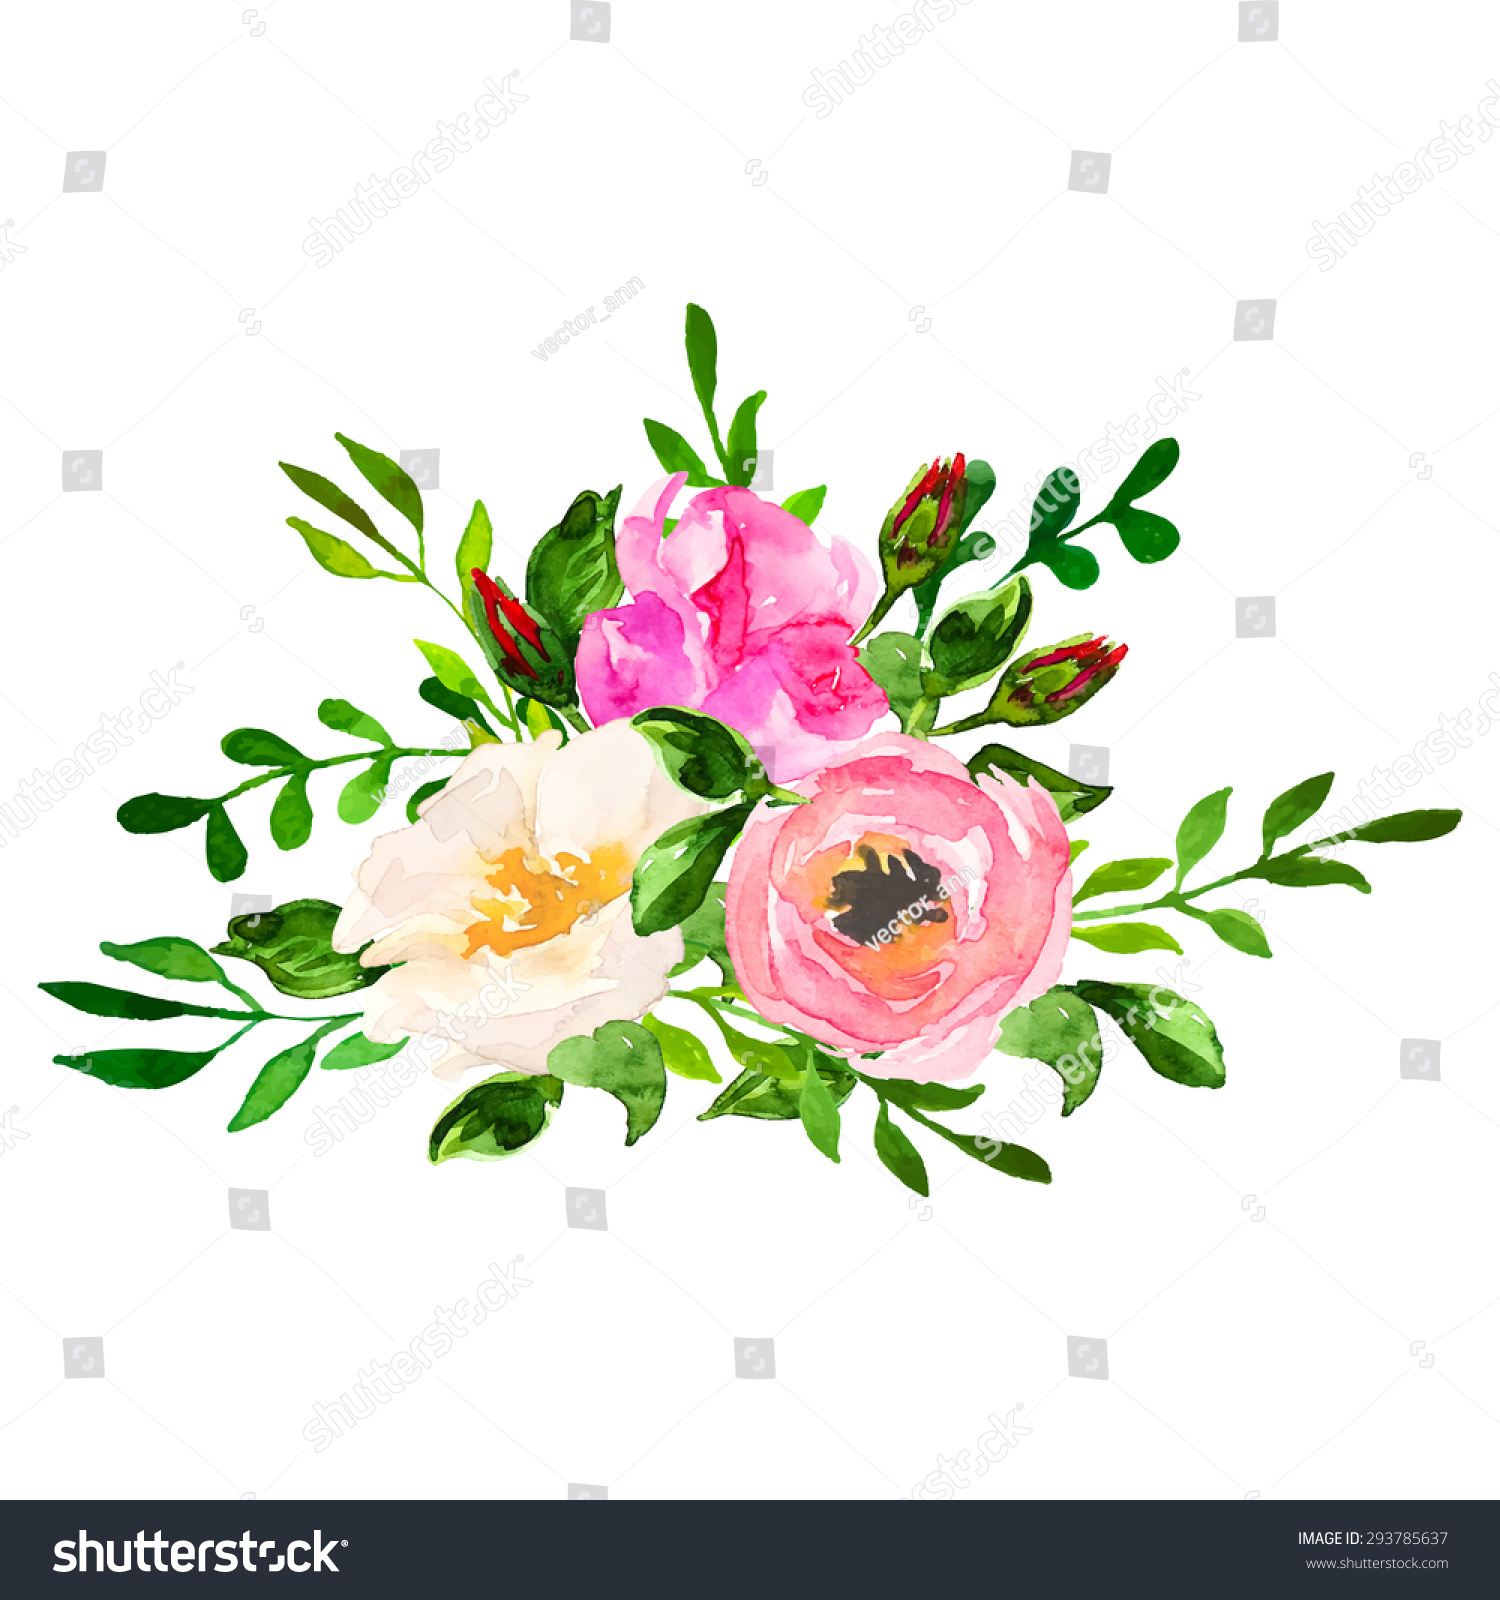 Beautiful Floral Hand Drawn Watercolor Bouquet Bunch Of Flowers Arrangement With Pink Roses